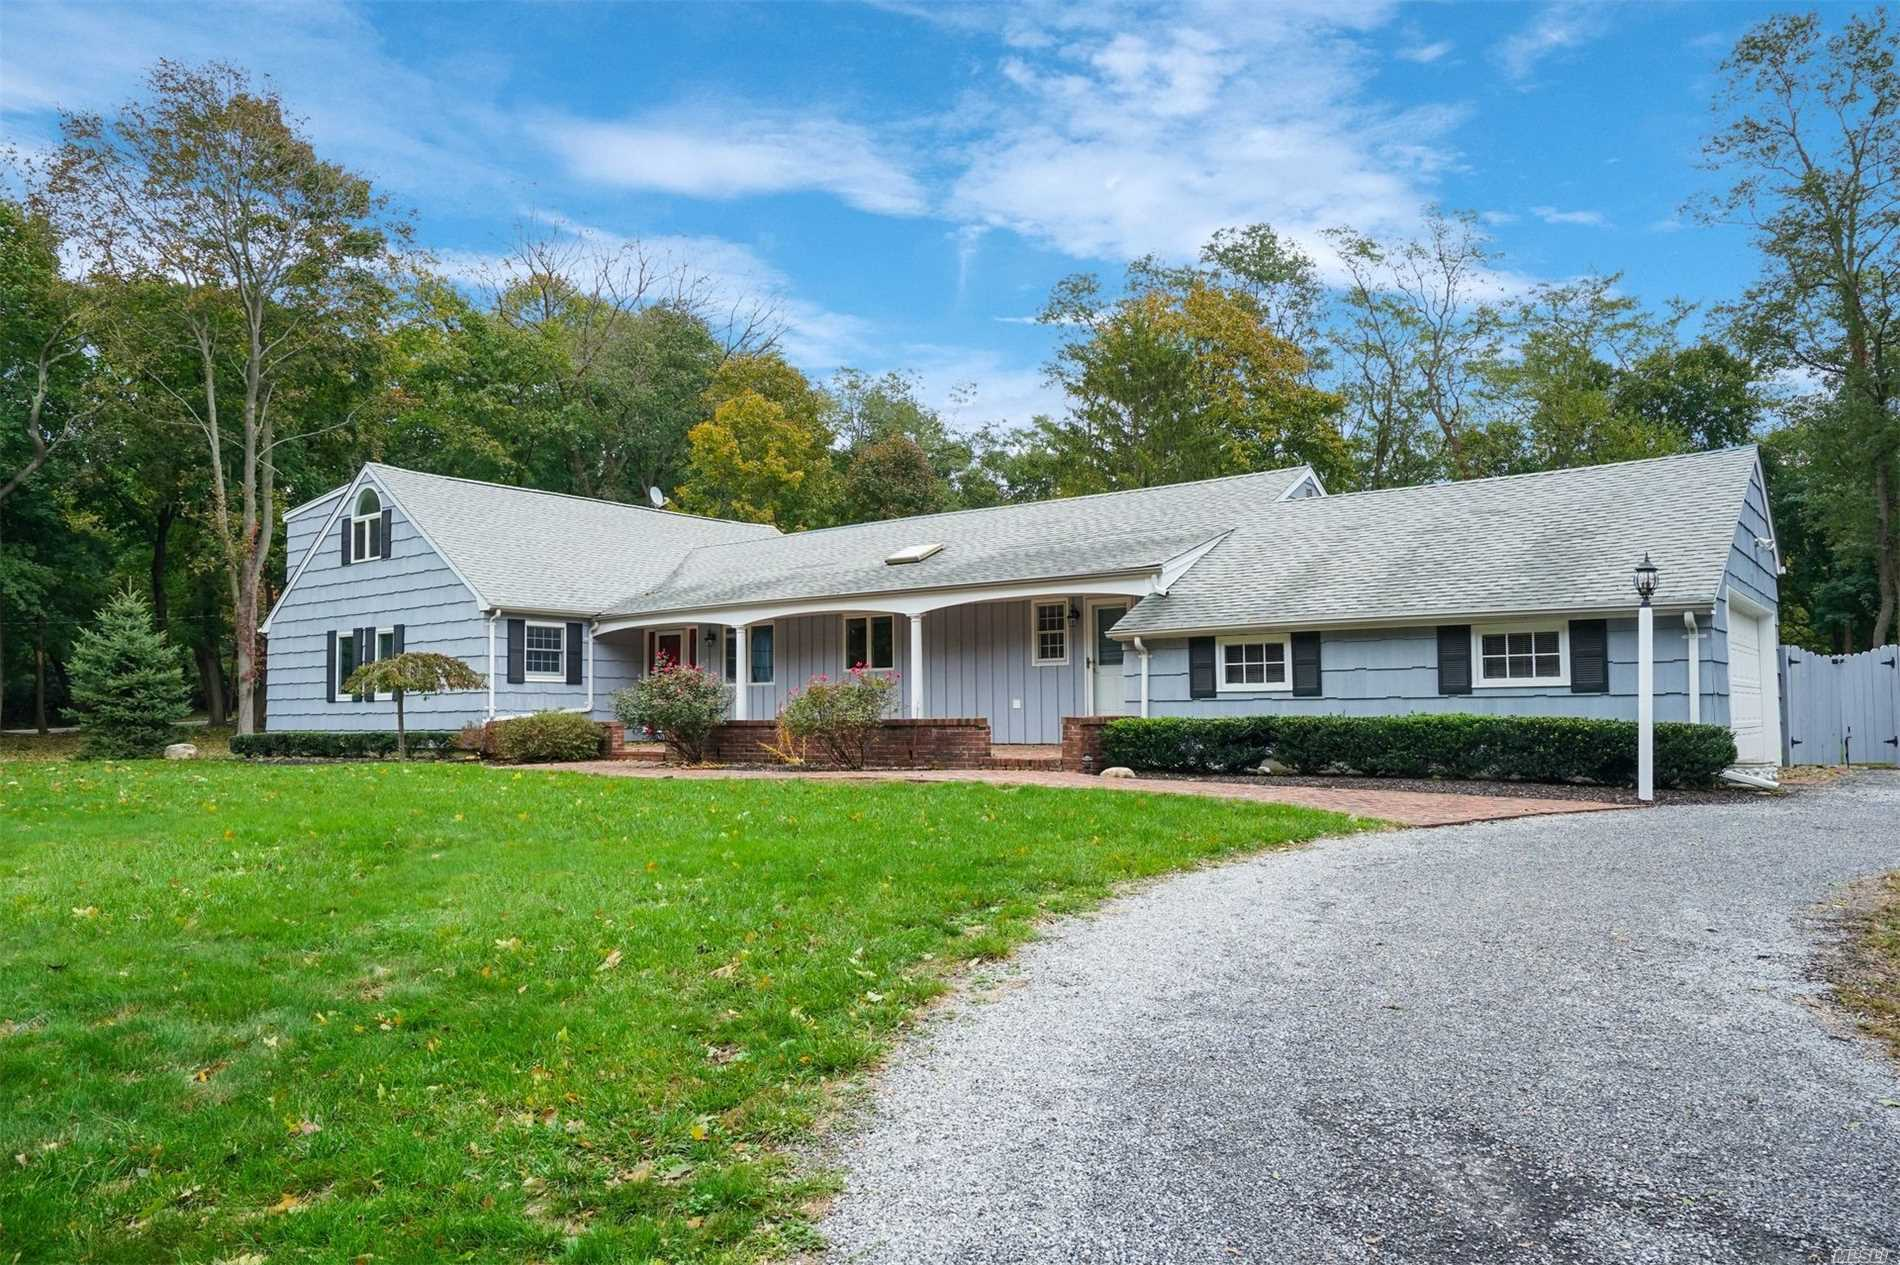 Desirably Located Farm Ranch W/ Front Porch On Usable 2 Acre Property In The Prestigious Cold Spring Harbor School District. Enjoy Open Concept Living W/ Hardwood Flrs, Adjoining Eat-In Kitchen, Dining Area & Family Room W/ Wood Burning Fireplace & French Doors To Deck. Large Picturesque Windows Allow Sun Filled Rooms. Convenience Of Either A 1st Or 2nd Fl Master Suite & 1st Fl Laundry. Situated Only A Half Mile To Lloyd Harbor Village Beach W/ Mooring Rights, Tennis Court, & Summer Camp (Fee).